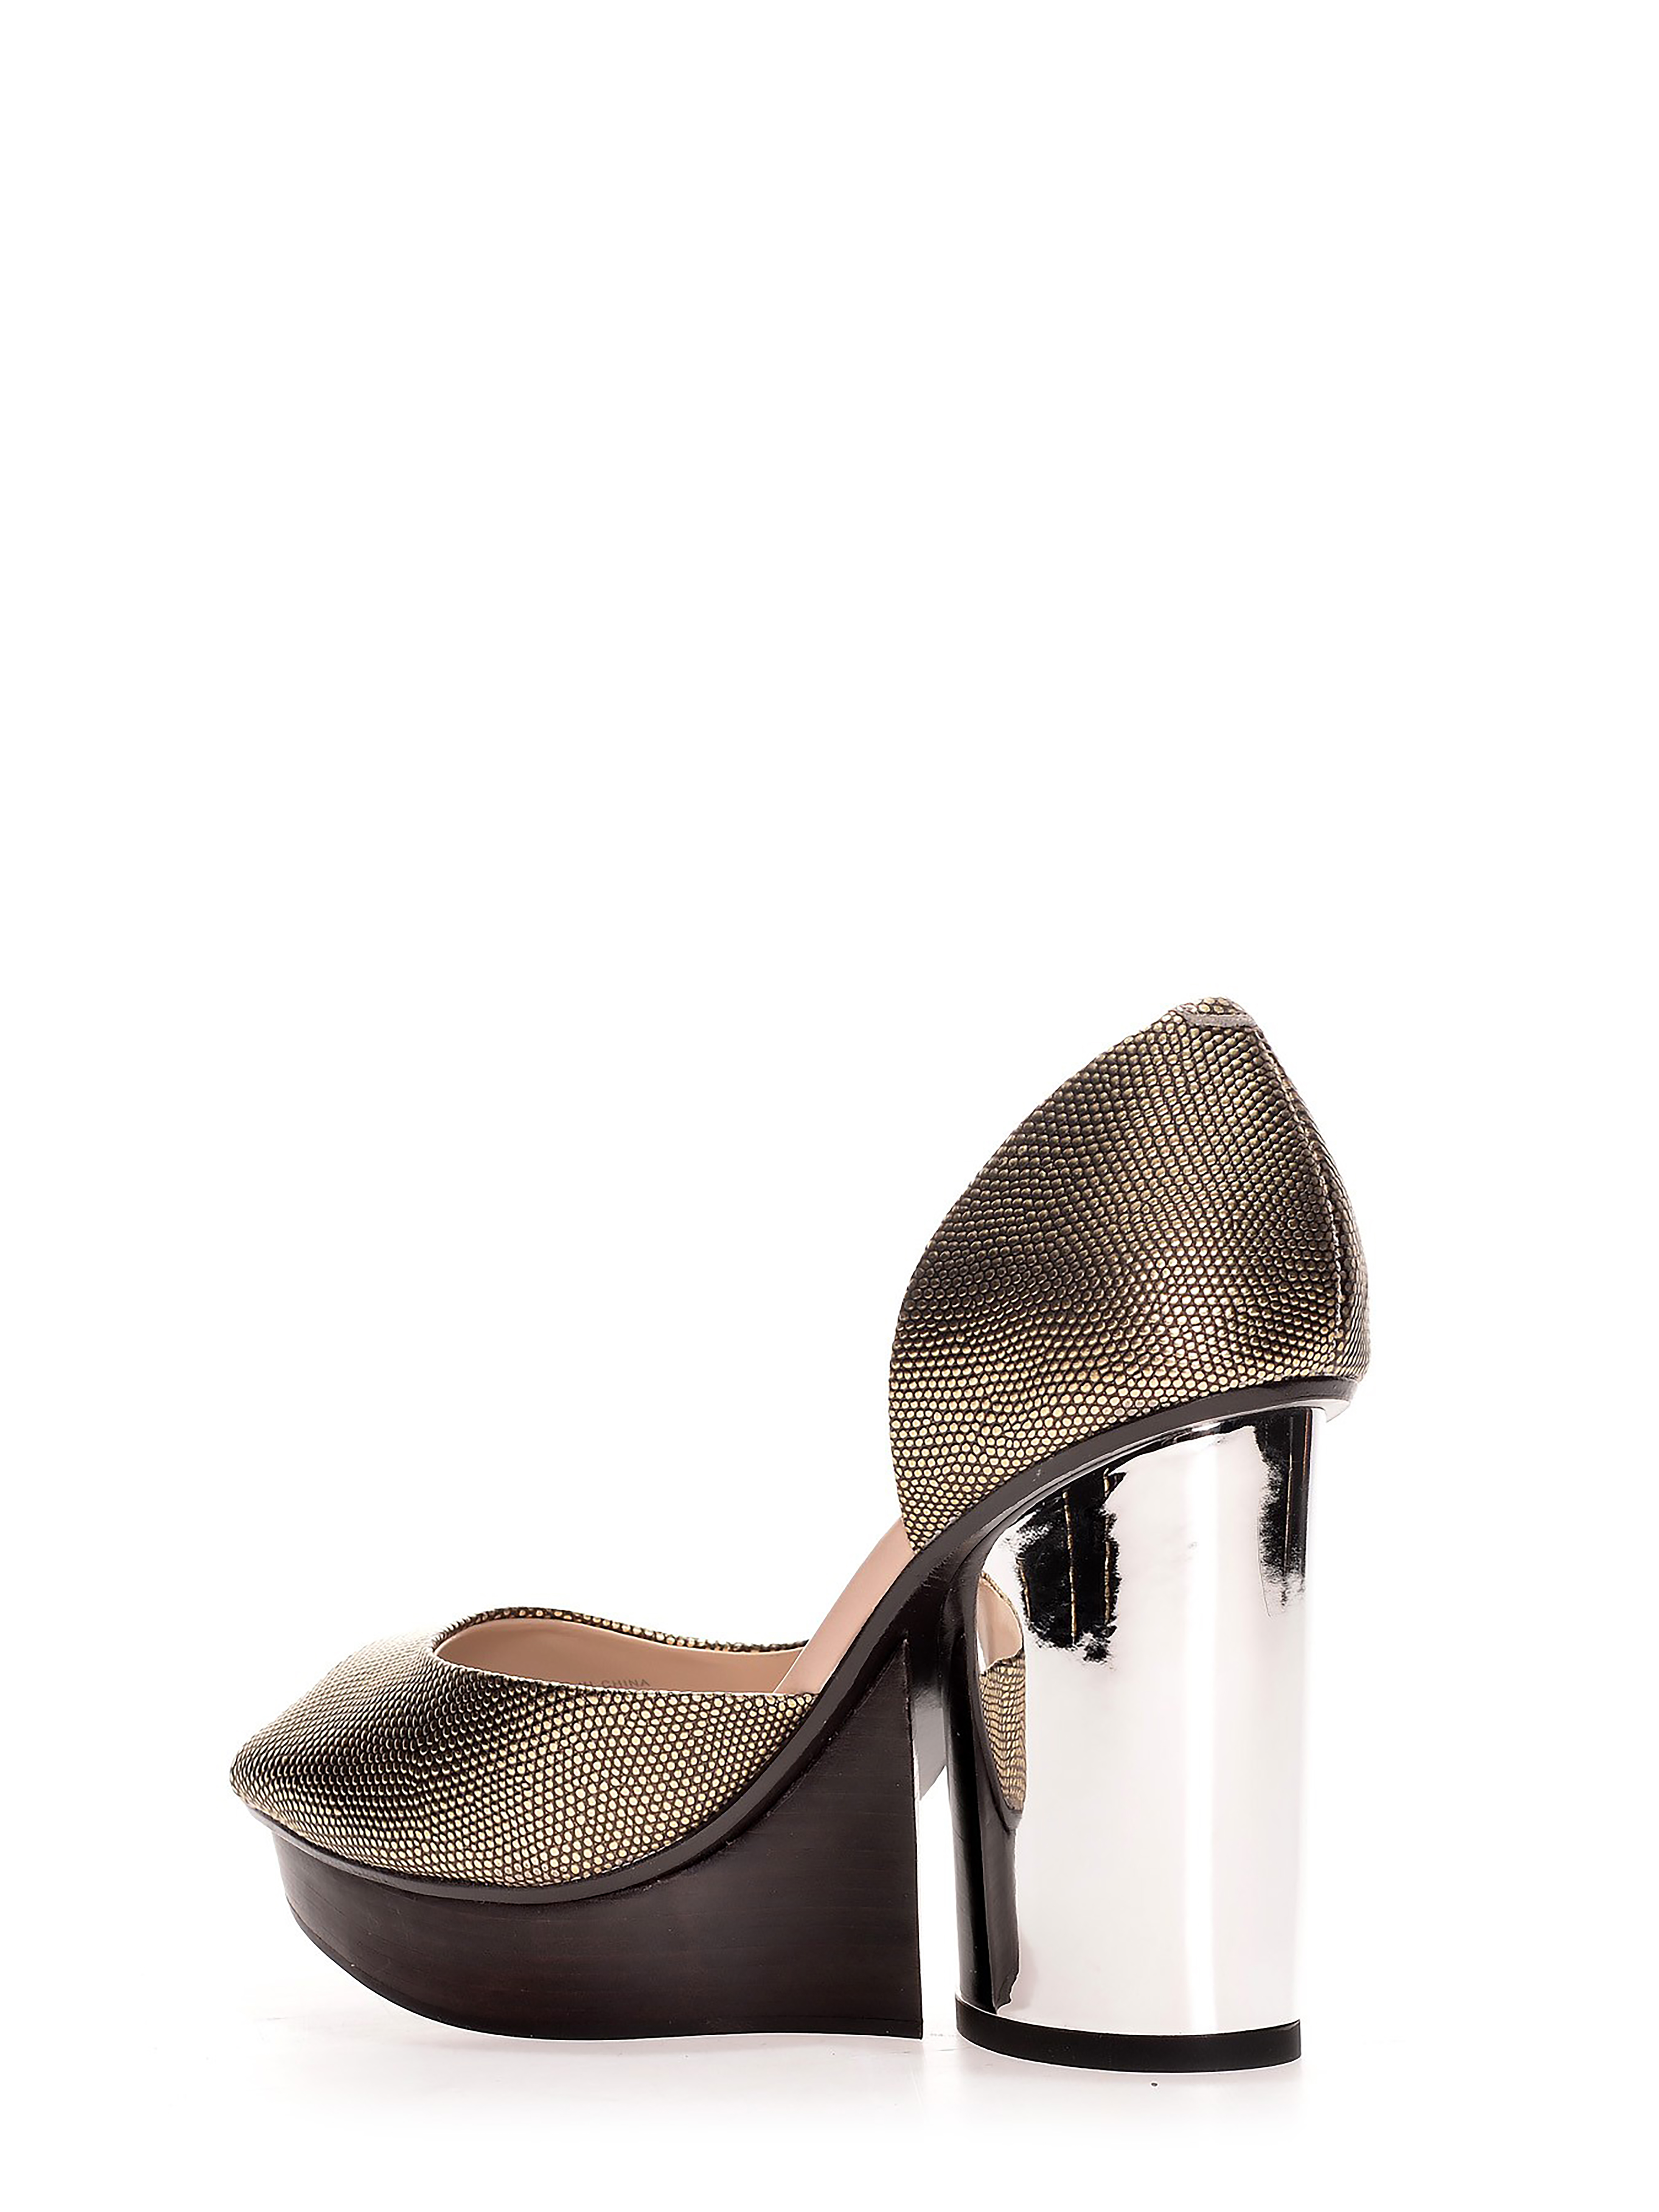 United Nude_River Pump_Gold